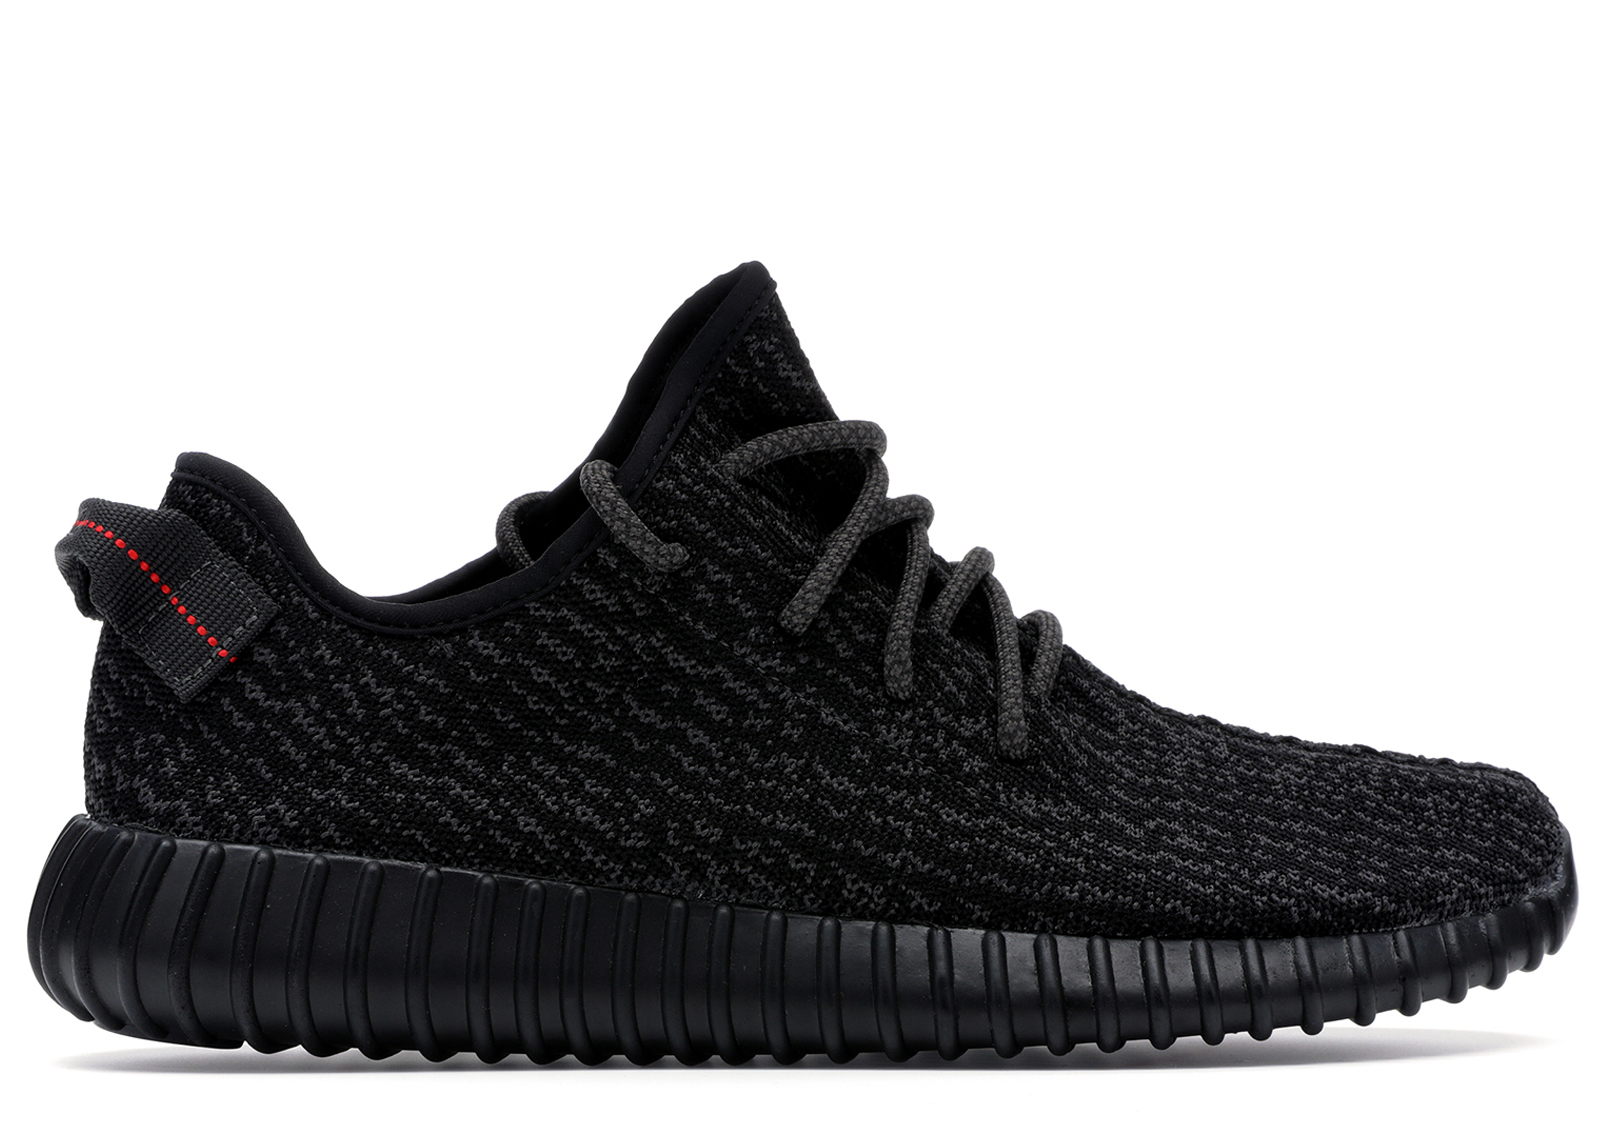 adidas yeezy boost low black